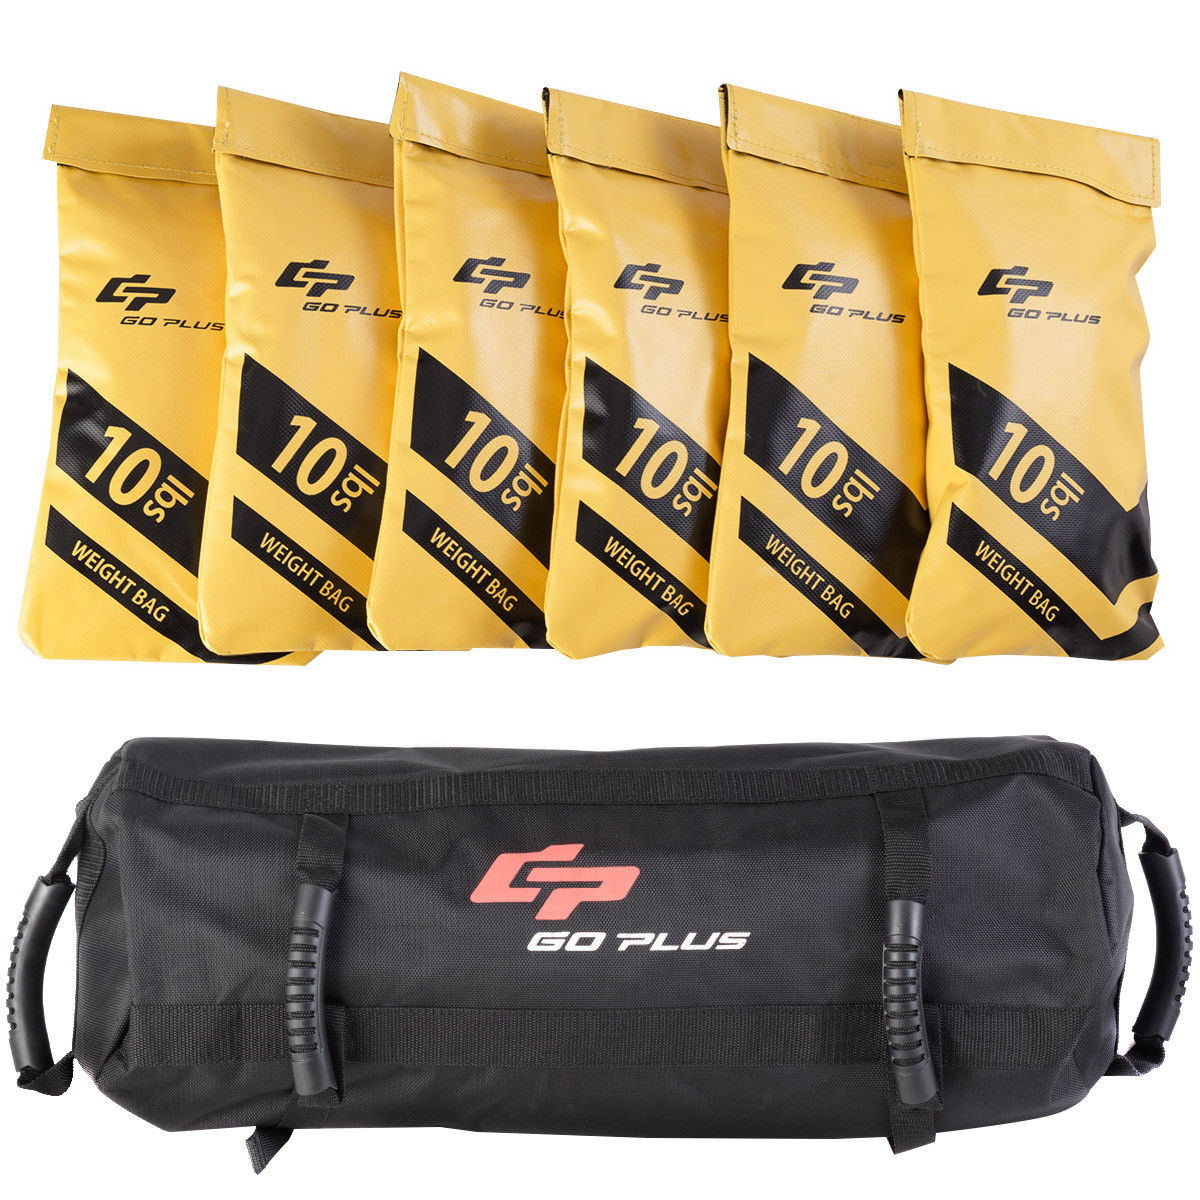 c8bf90245d45 Goplus 60lbs Body Press Durable Fitness Exercise Weighted Sandbags w Filler  Bags